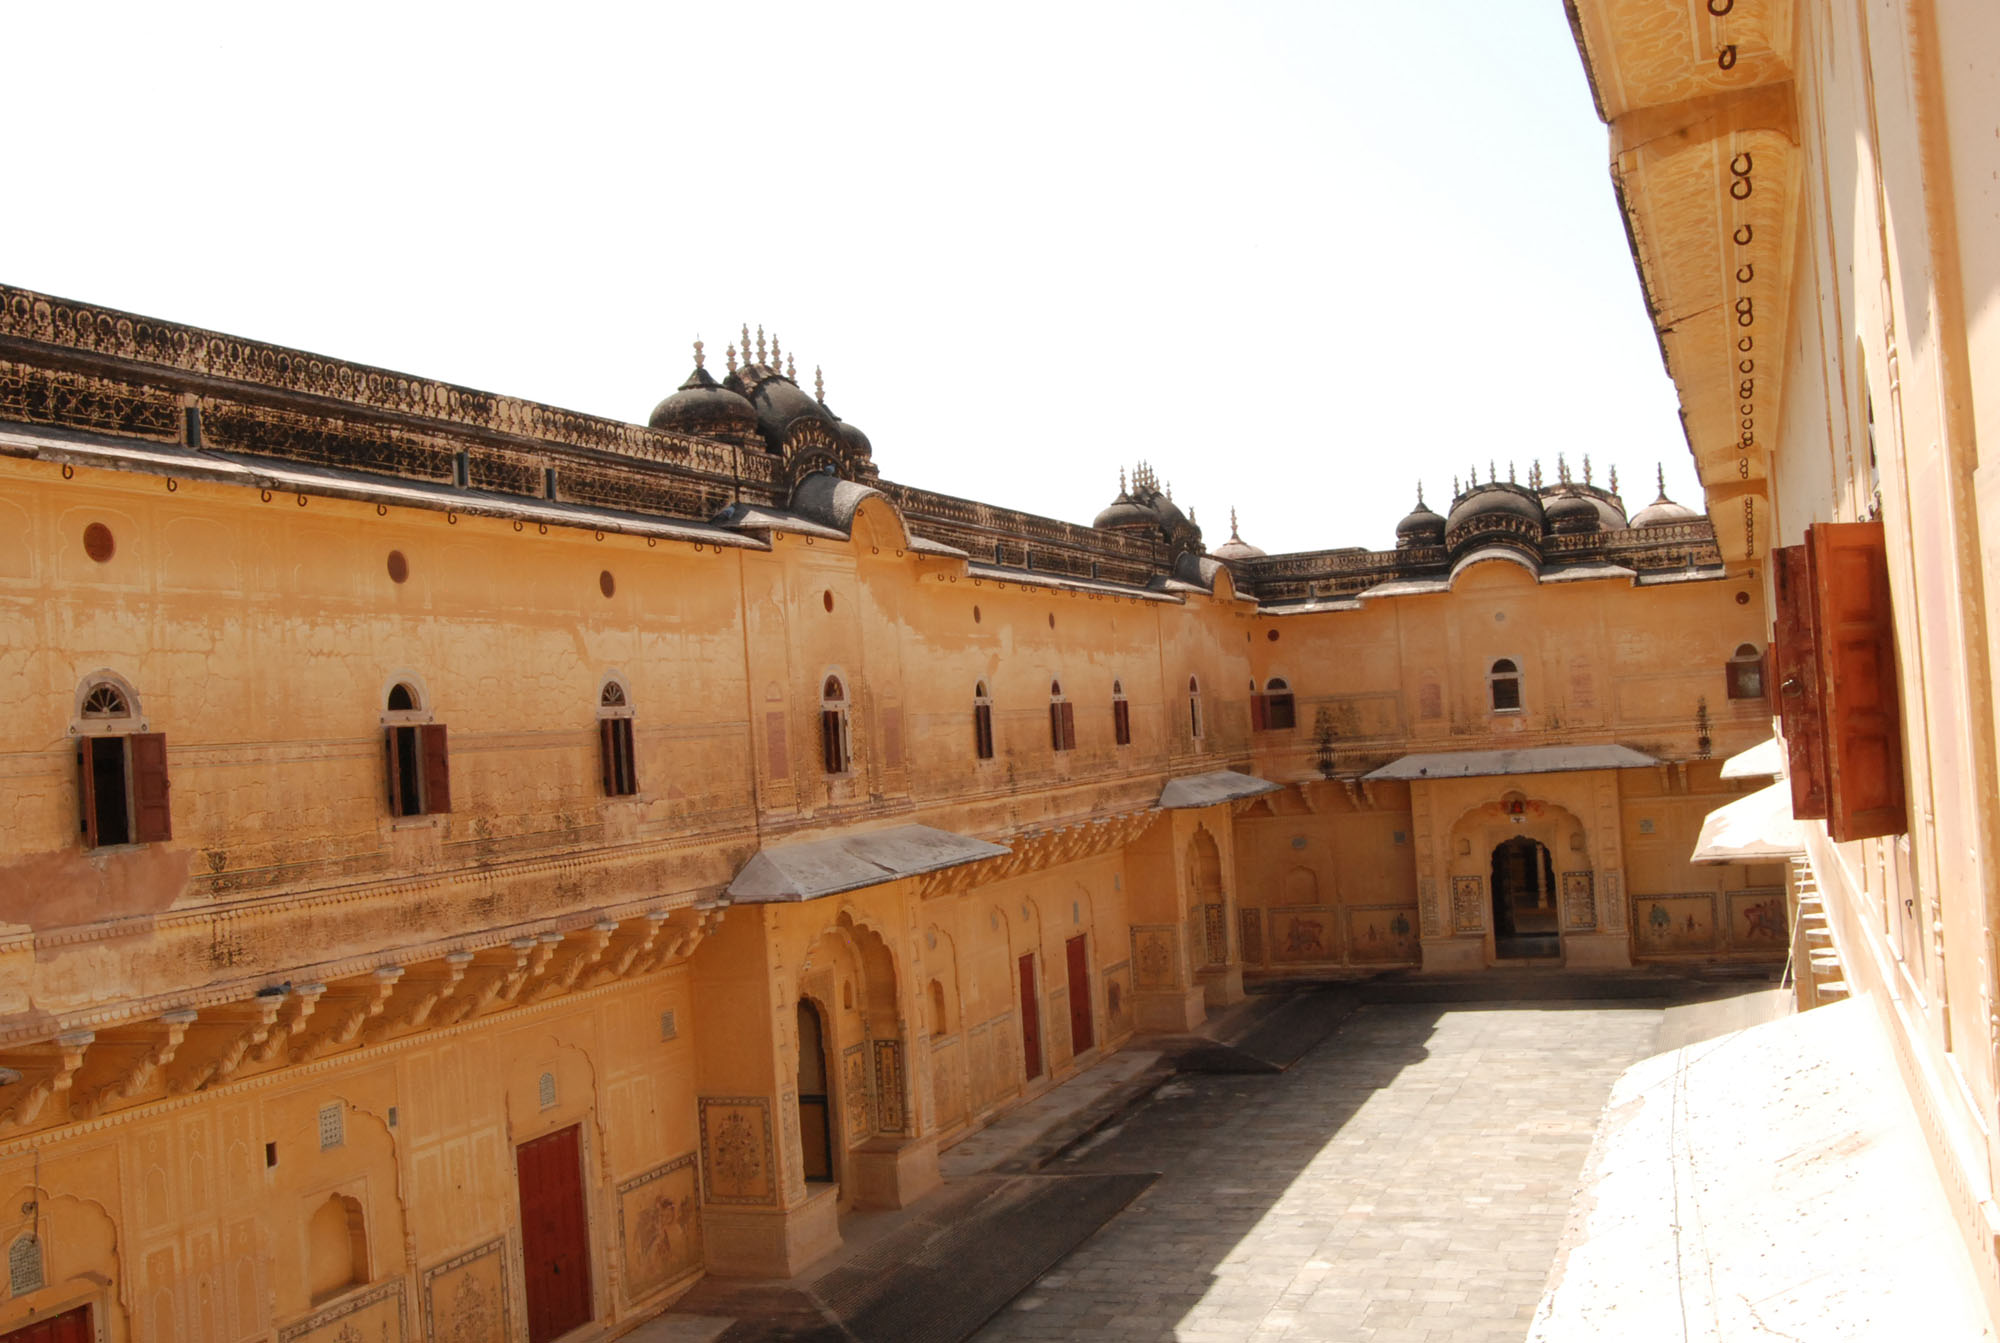 Madhvendra Palace in Nahargarh Fort